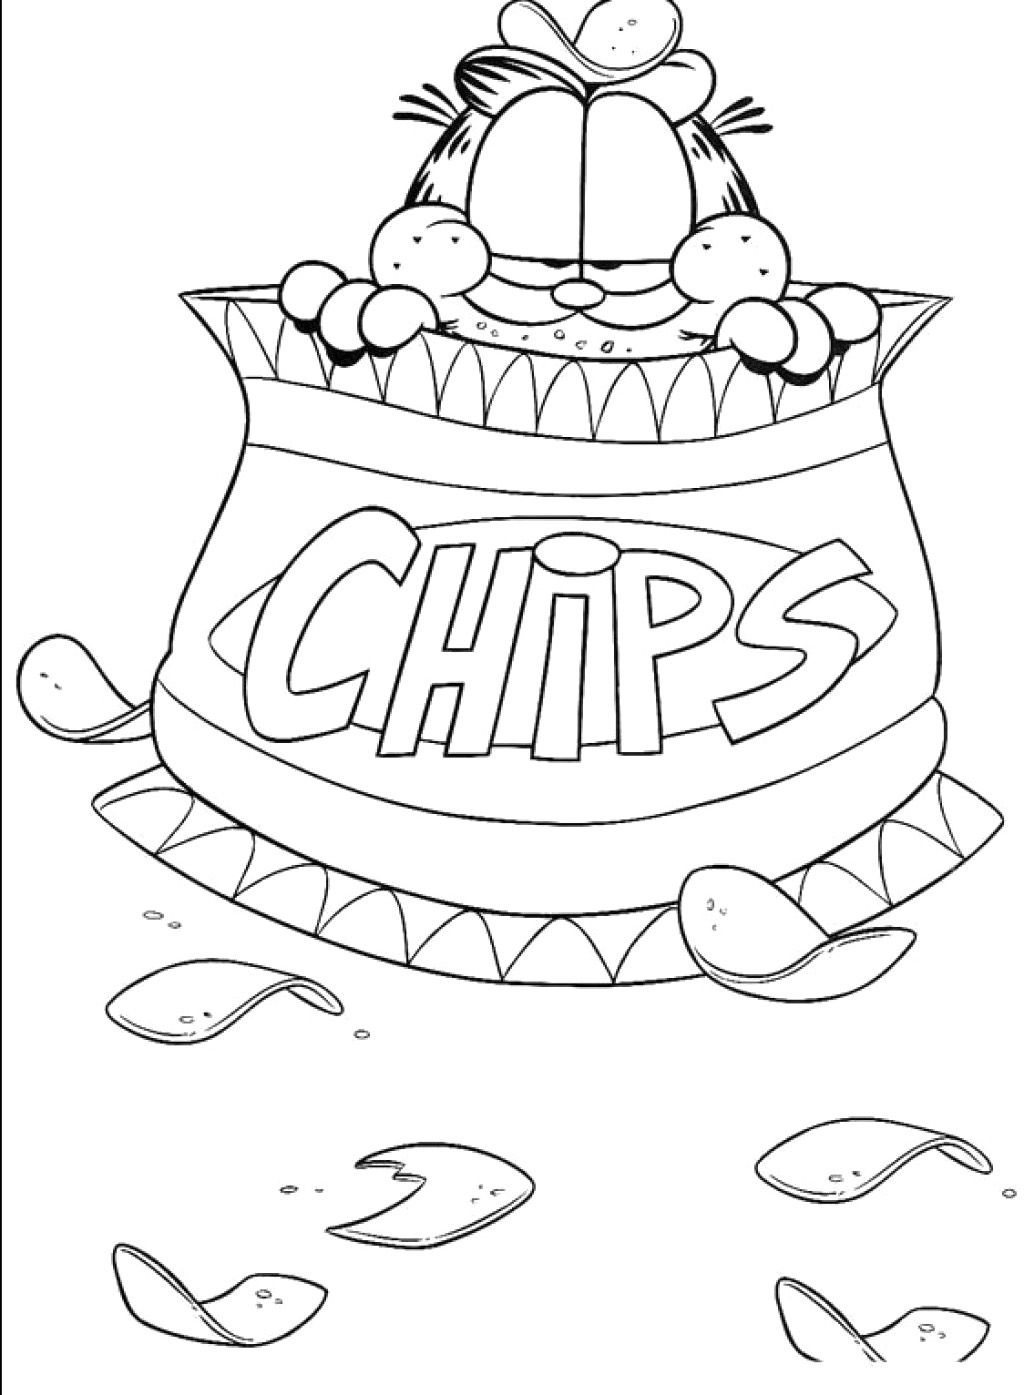 Garfield Chips Coloring Page Cartoon Coloring Pages Cat